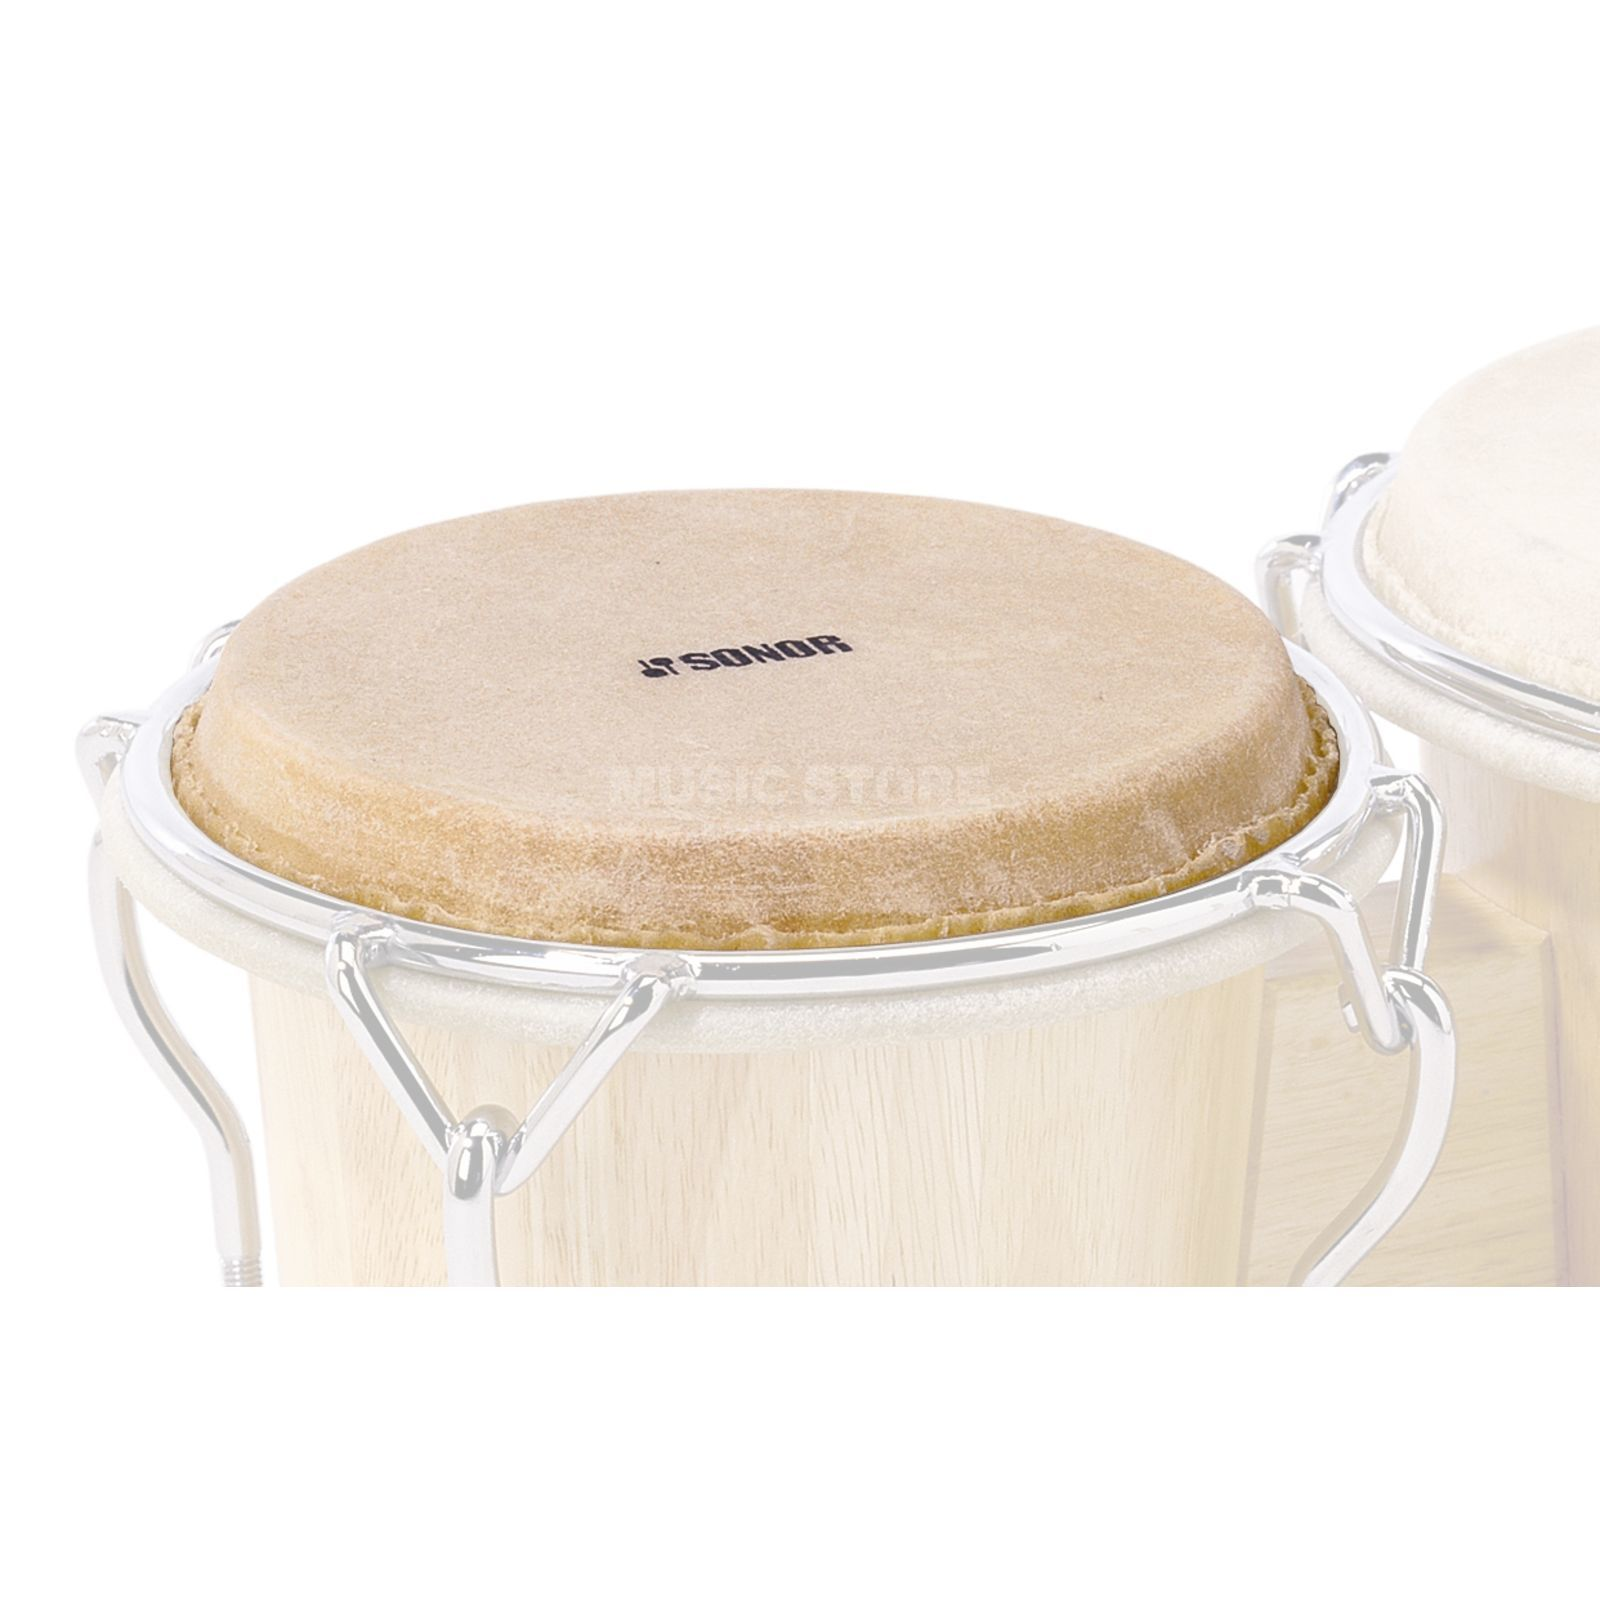 "Sonor Bongo Fell GHB 7 CR, 7"" Curved Rim Produktbild"